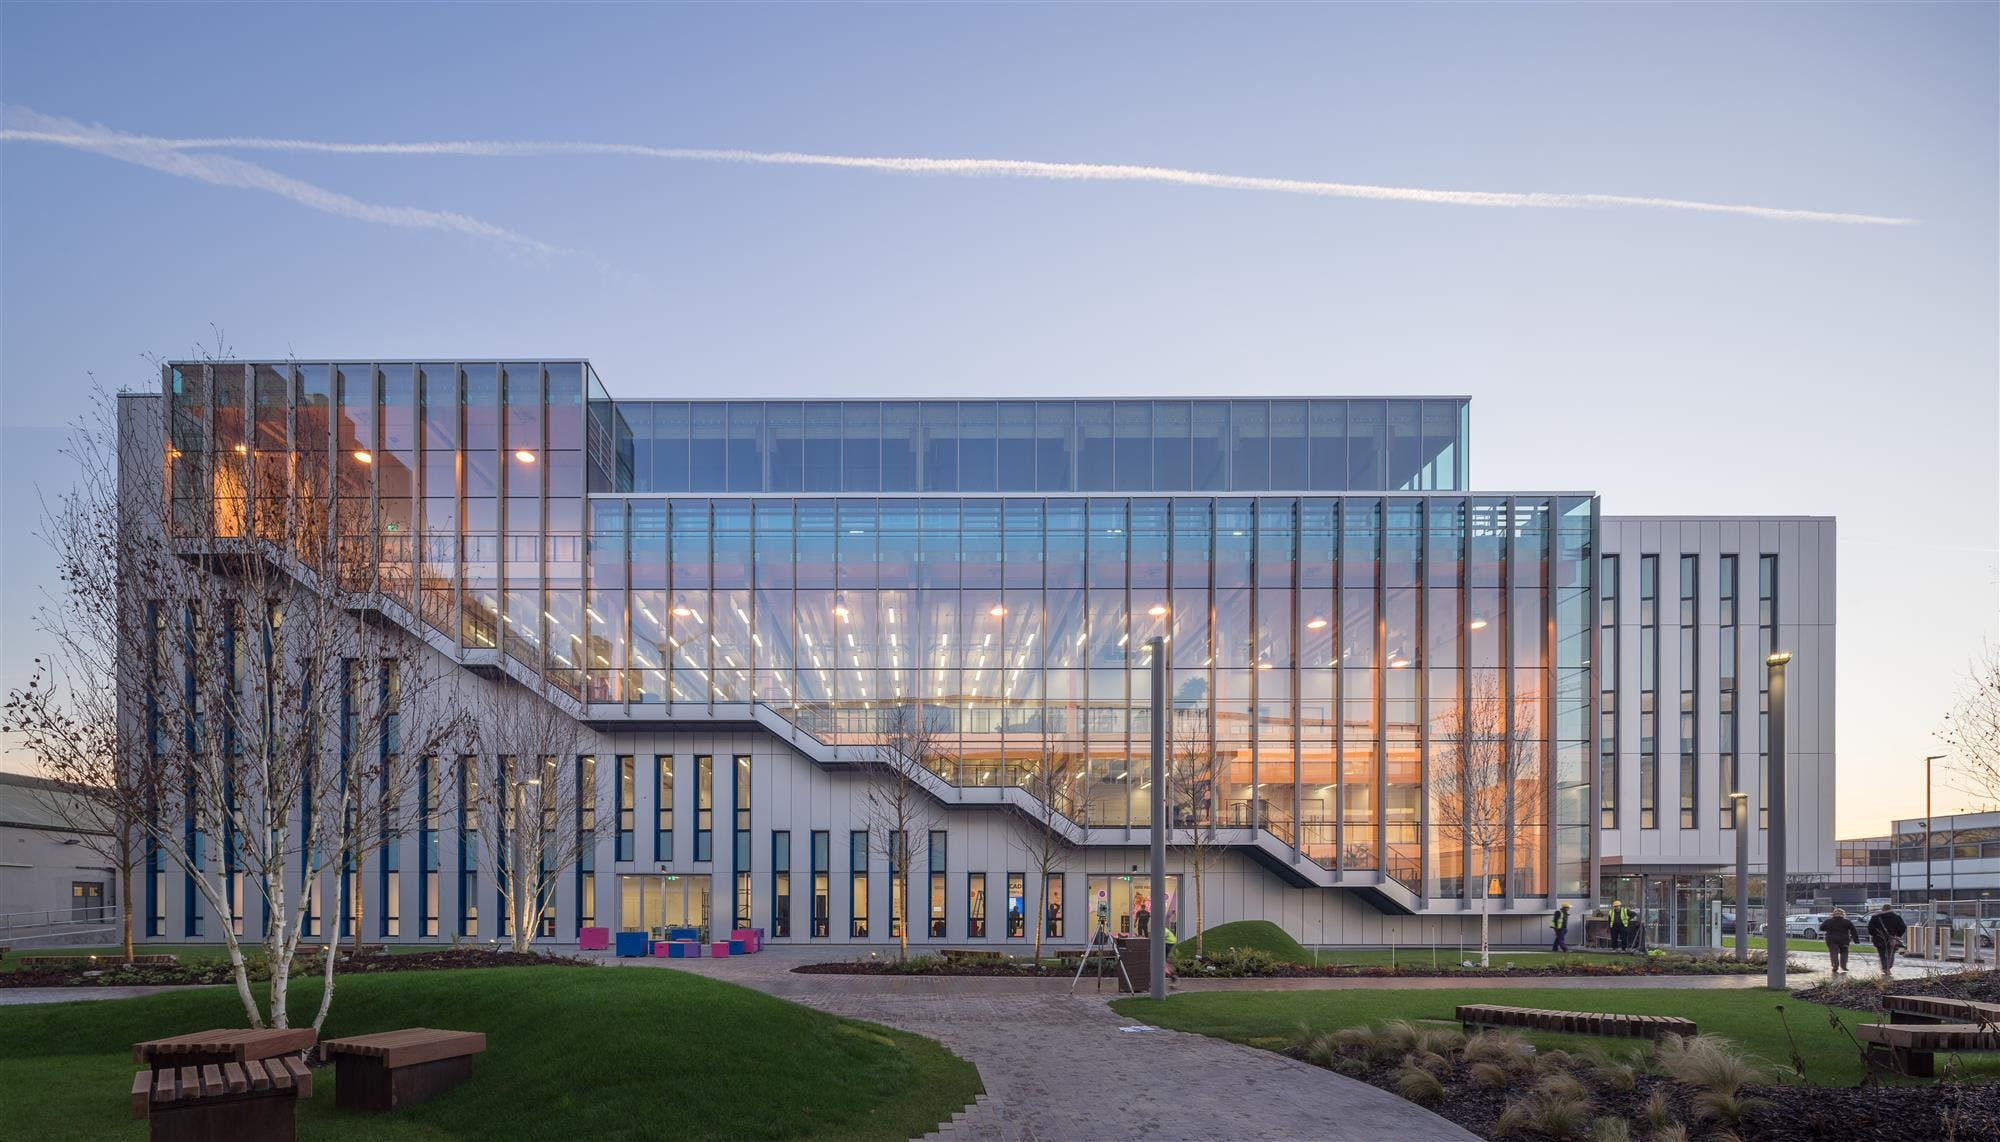 Bskyb Believe In Better Building Arup Architects Archinect